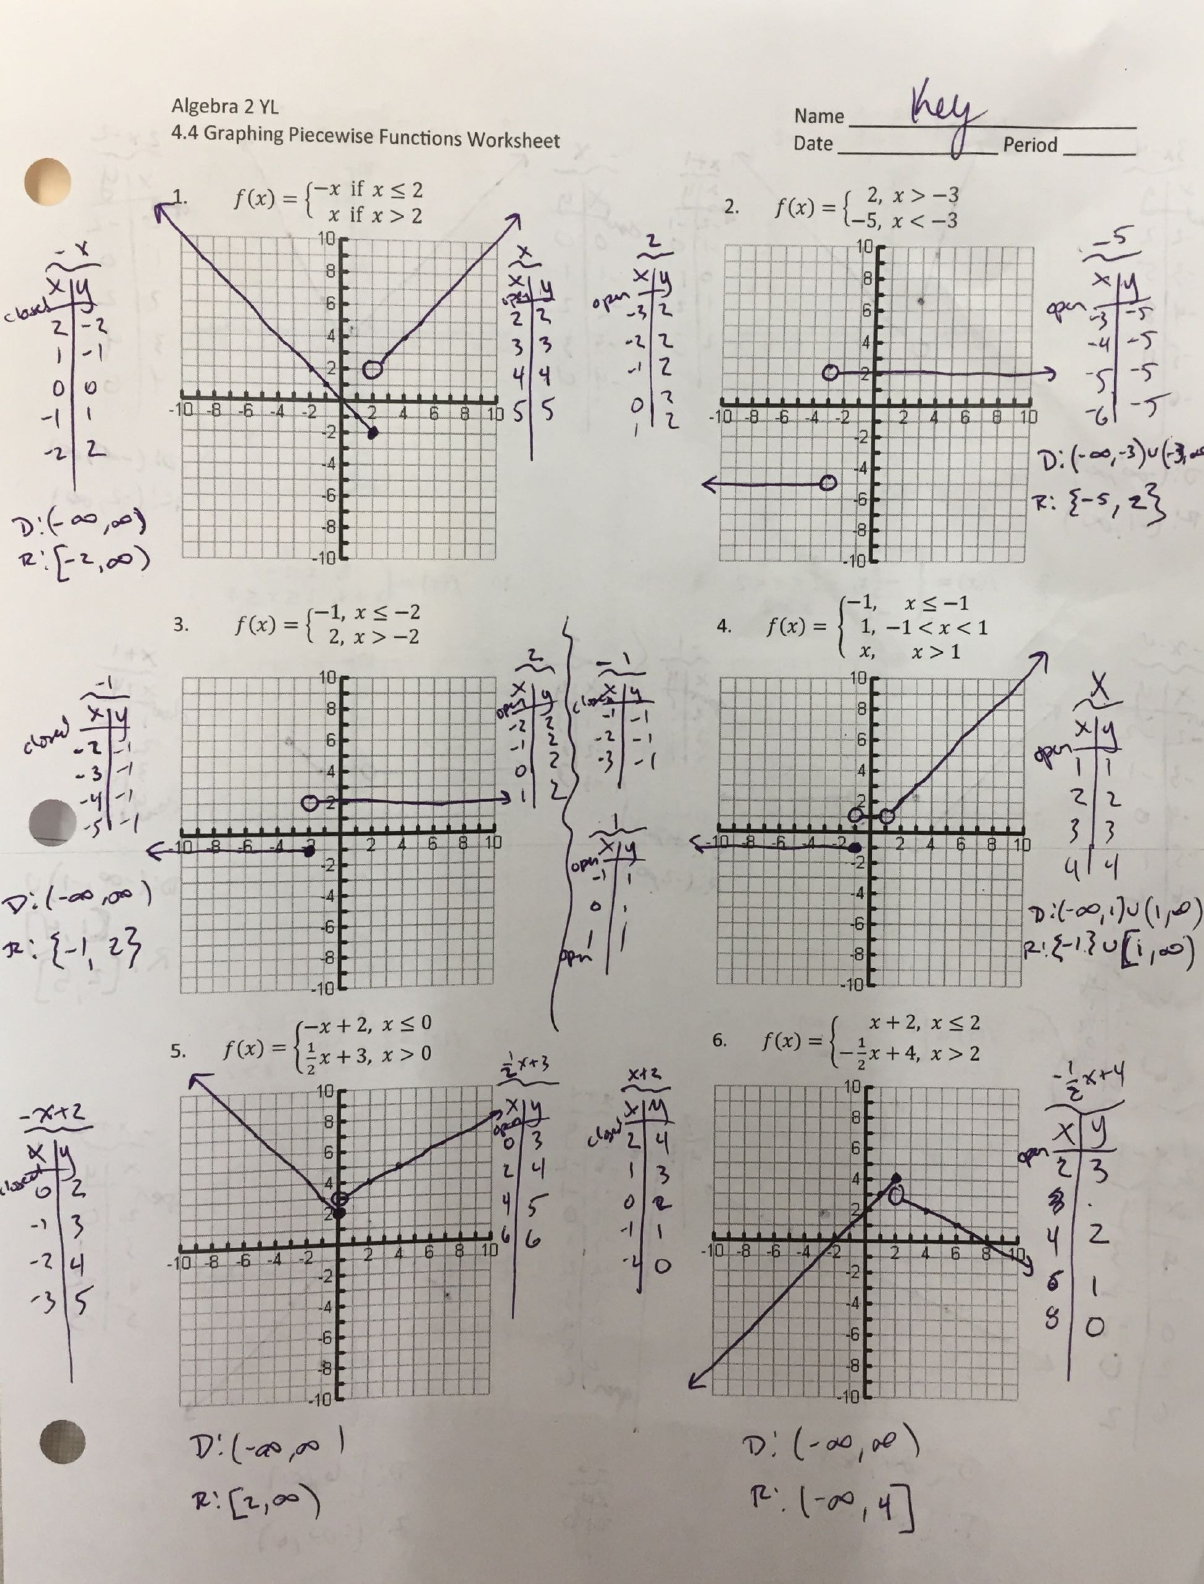 Algebra 2 Yl 4.4 Graphing Piecewise Functions 2 Yl 4.4